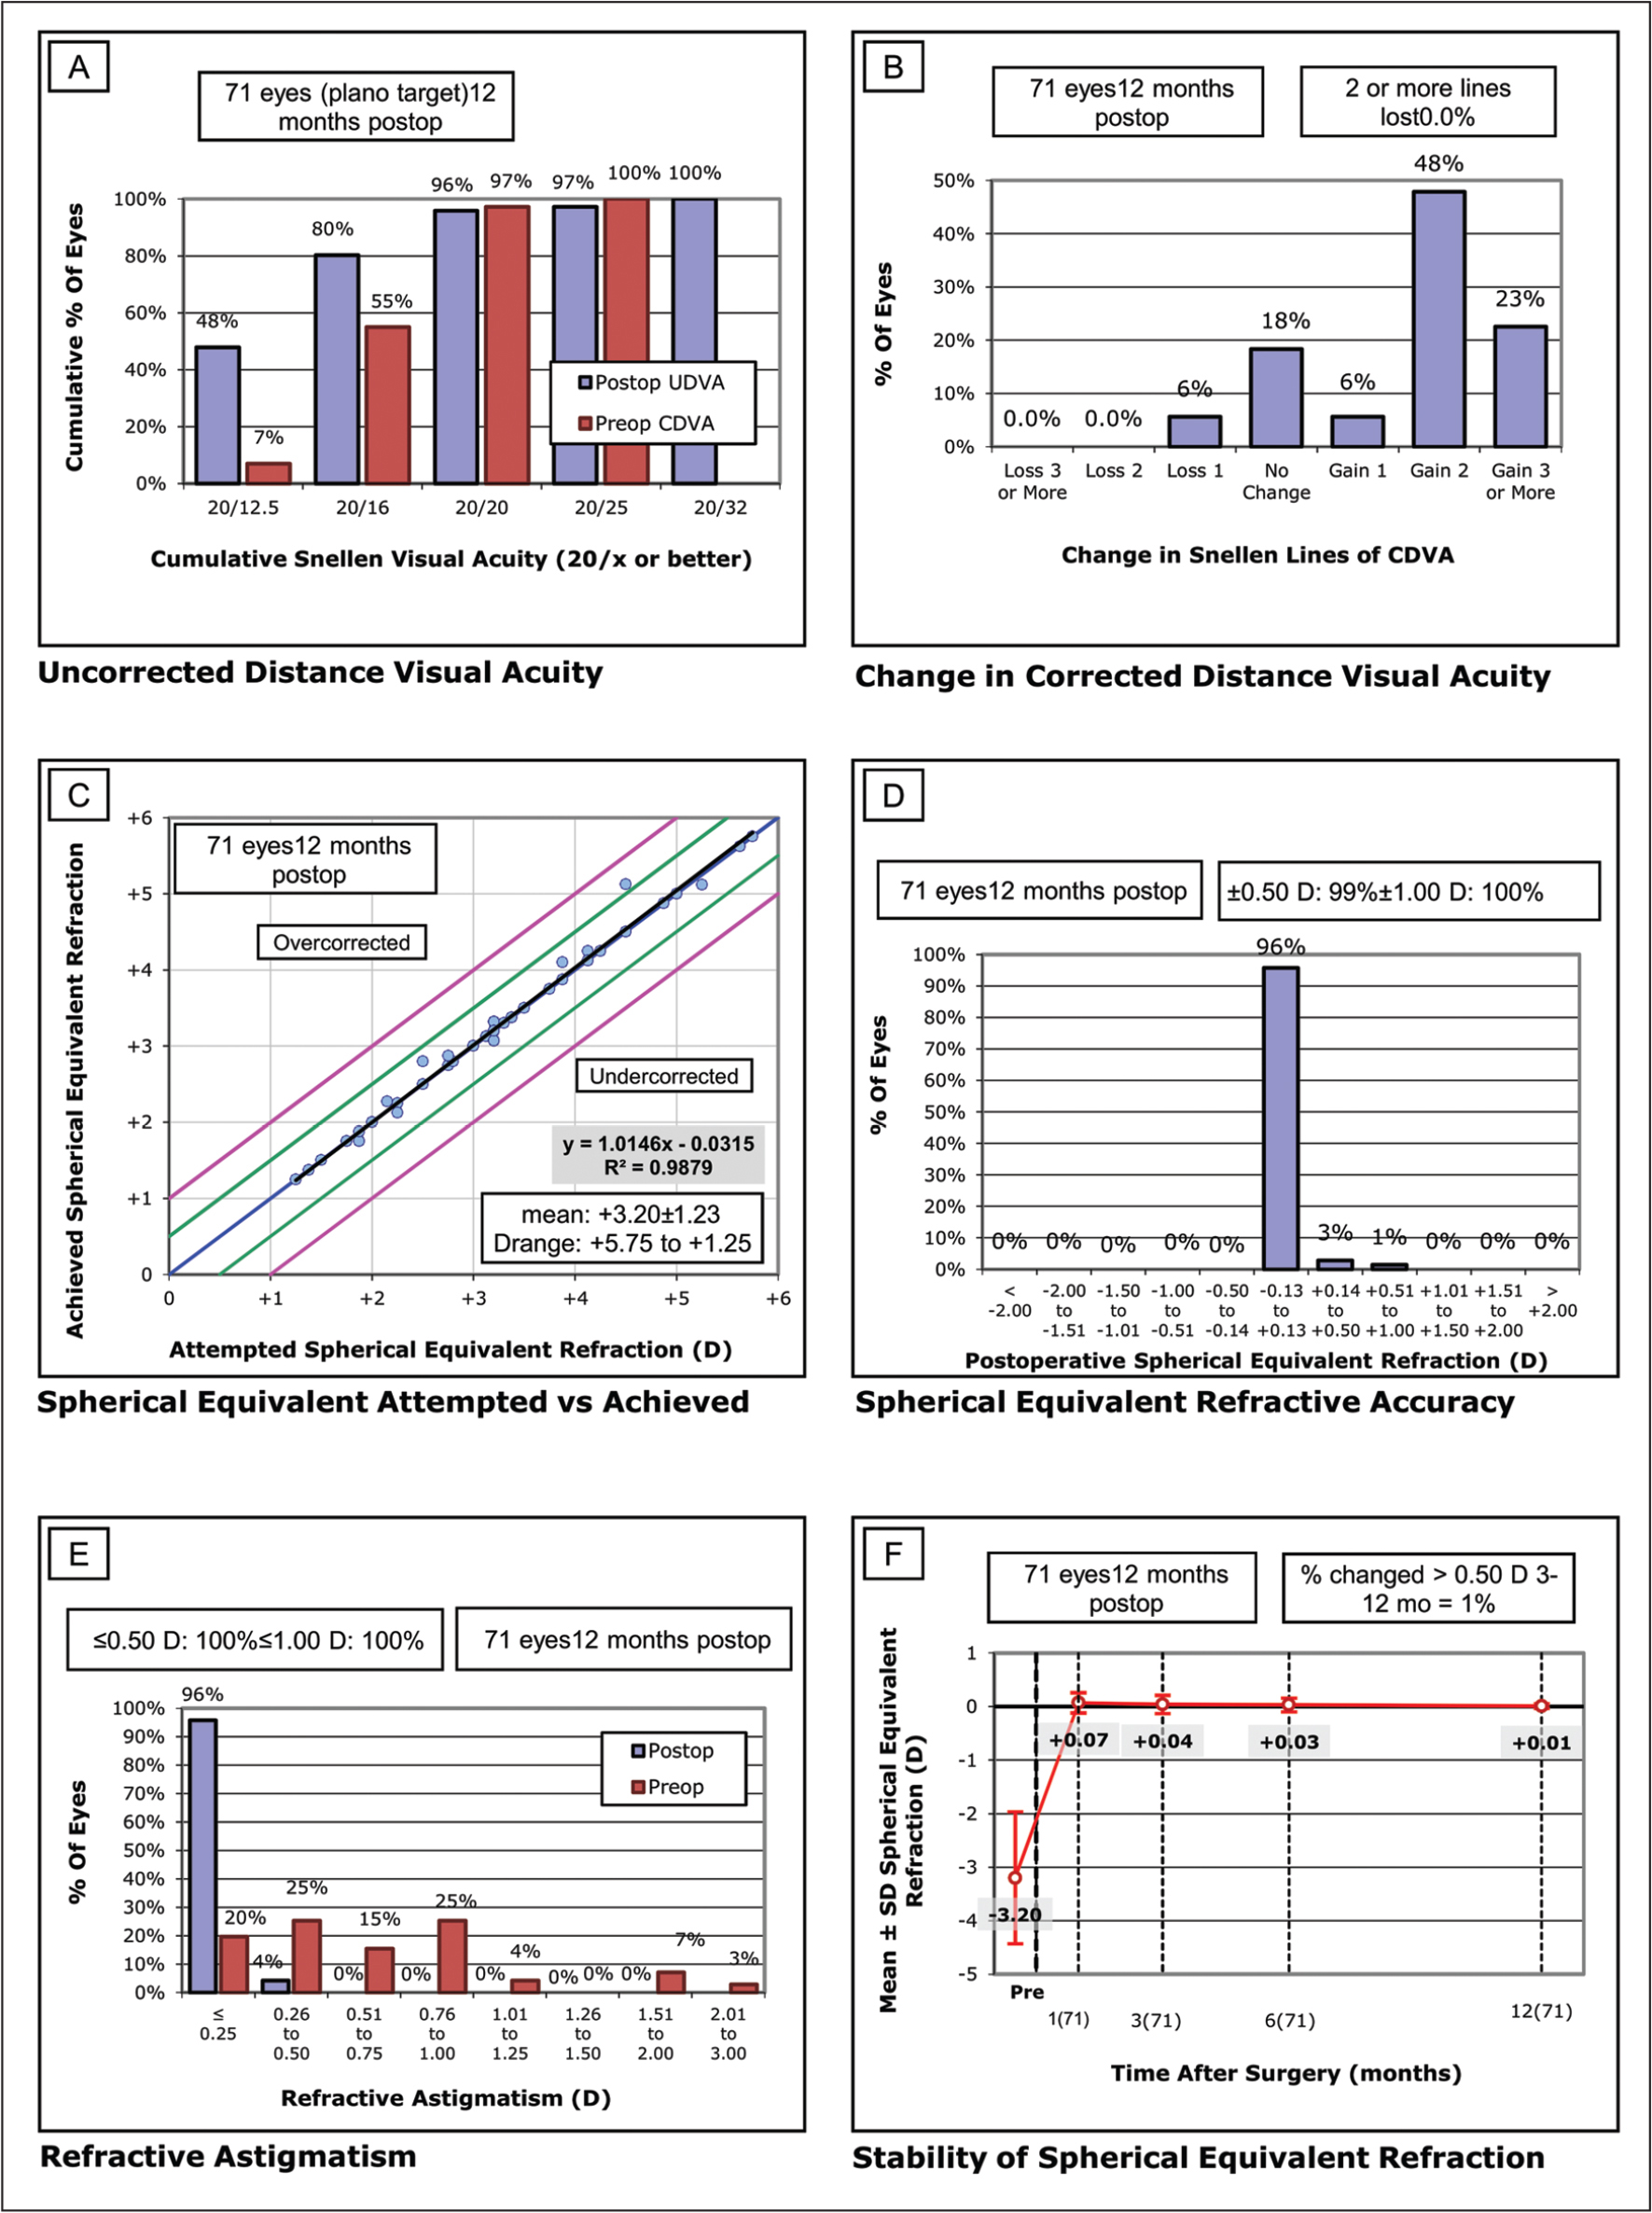 Standard graphs for refractive visual outcomes of eyes with mild to moderate myopia treated by single-step transepithelial photorefractive keratectomy with mitomycin C. The figure demonstrates results of (A) postoperative uncorrected distance visual acuity (UDVA) vs preoperative corrected distance visual acuity (CDVA), (B) change of CDVA in terms of numbers of decimal lines, (C) spherical equivalent correction attempted vs achieved, (D) accuracy of spherical equivalent correction, (E) accuracy of refractive astigmatism correction, and (F) stability of postoperative spherical equivalent refraction. D = diopters